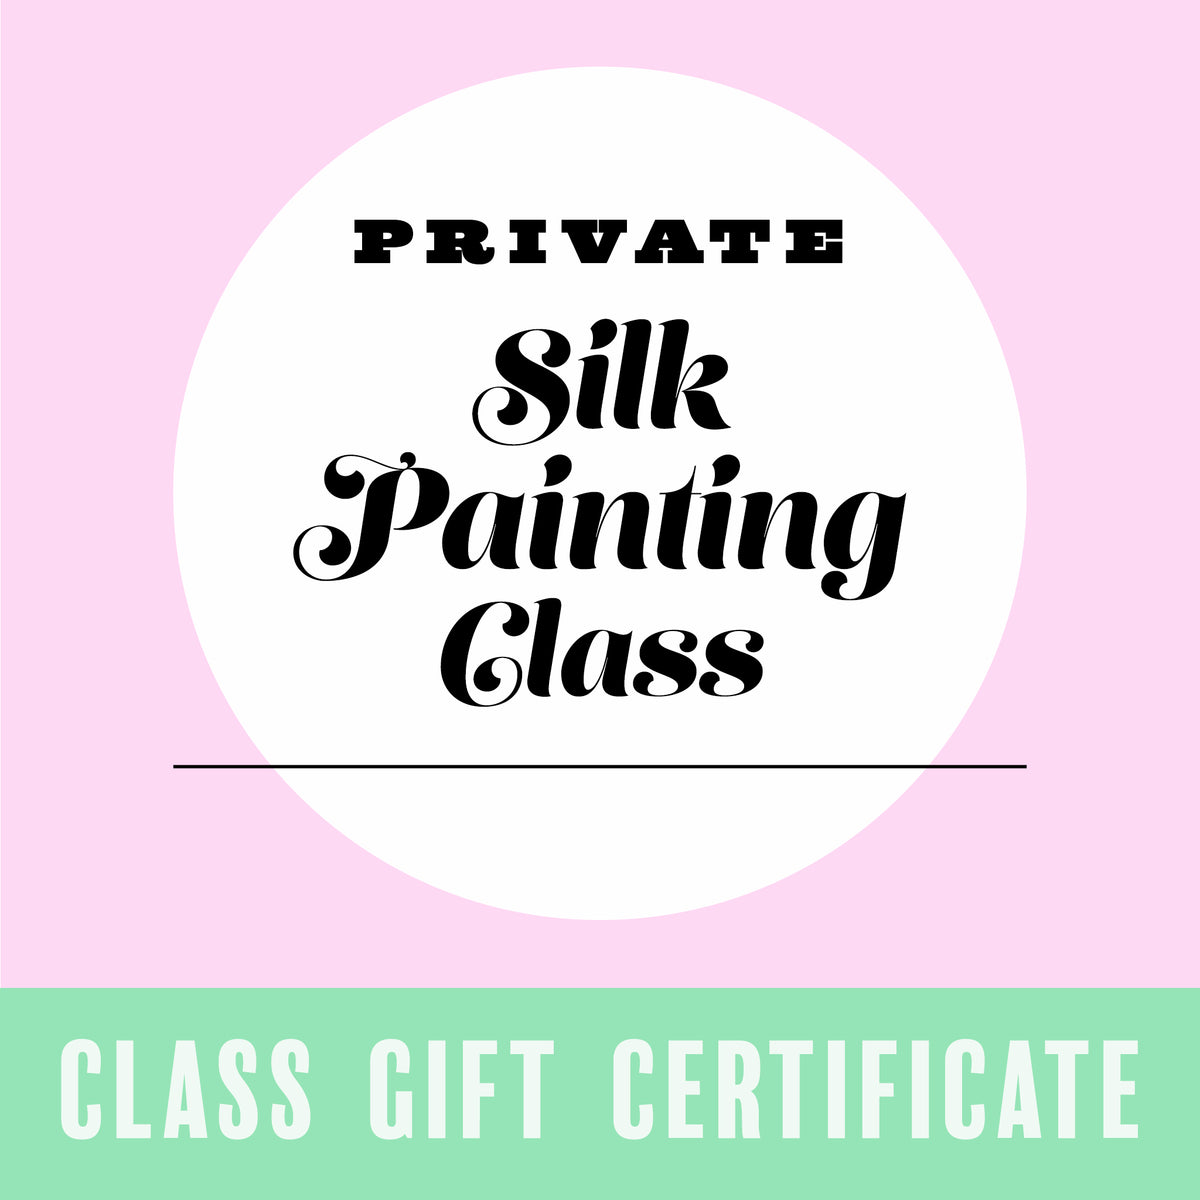 Gift Certificate for a Private Silk Painting Class